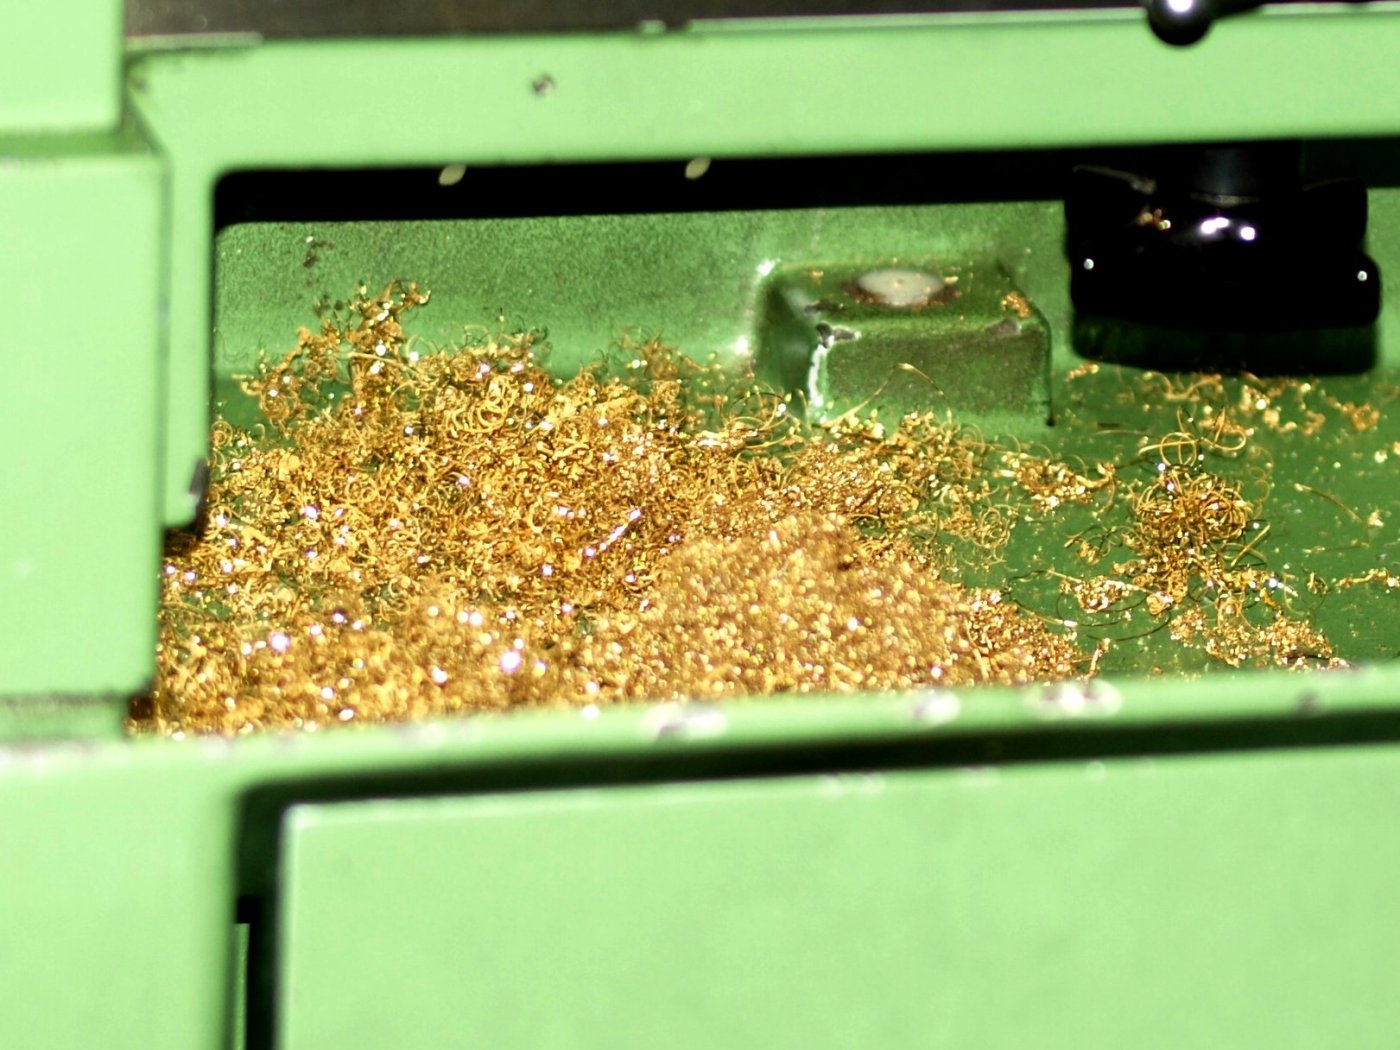 Gold shavings that are left behind after machine milling process